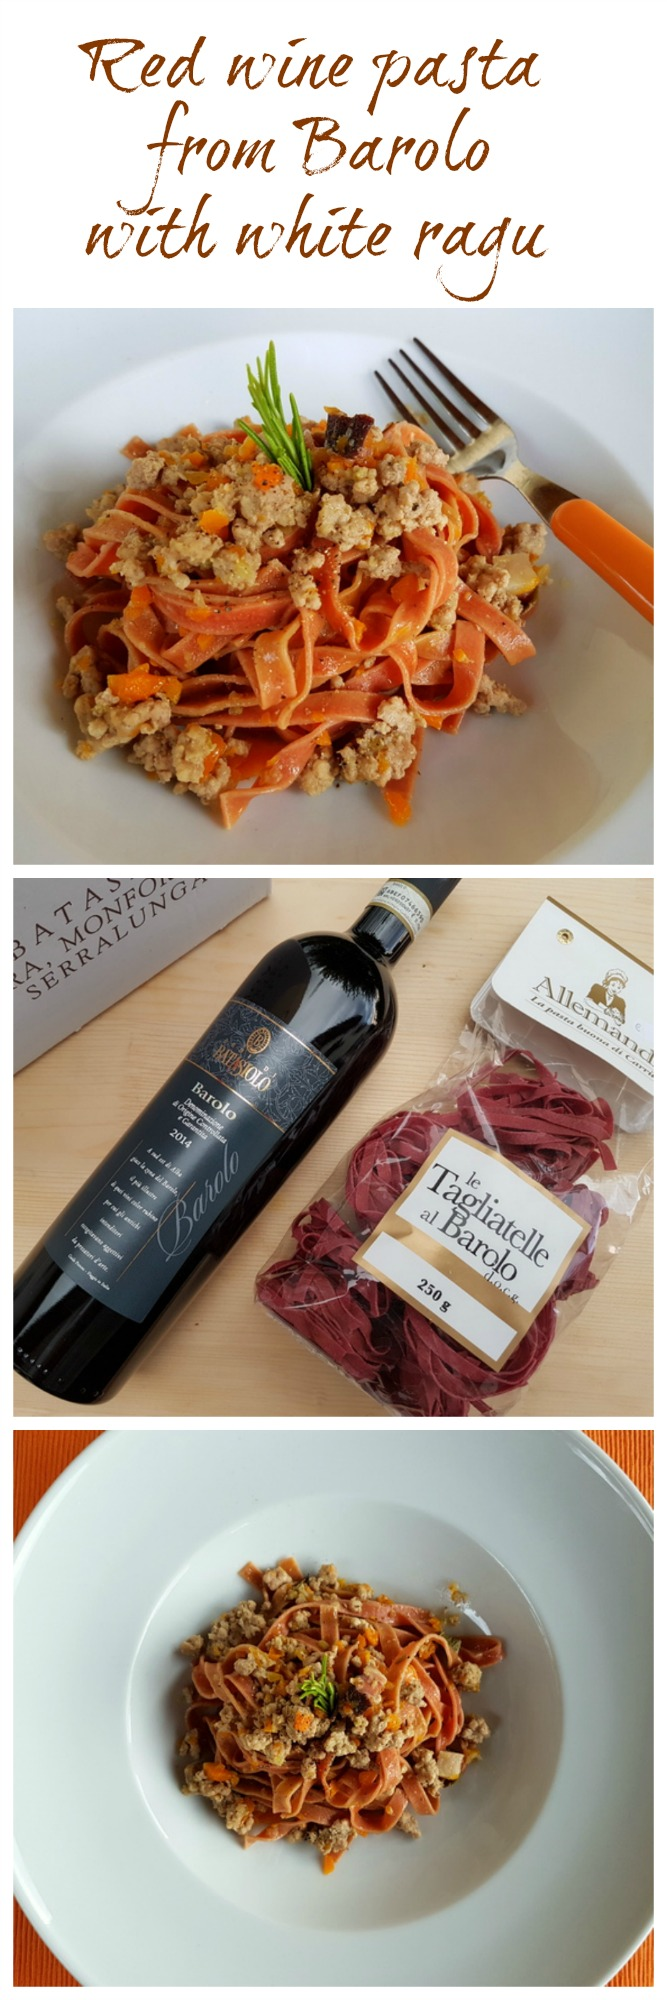 red wine pasta from Barolo with white ragu